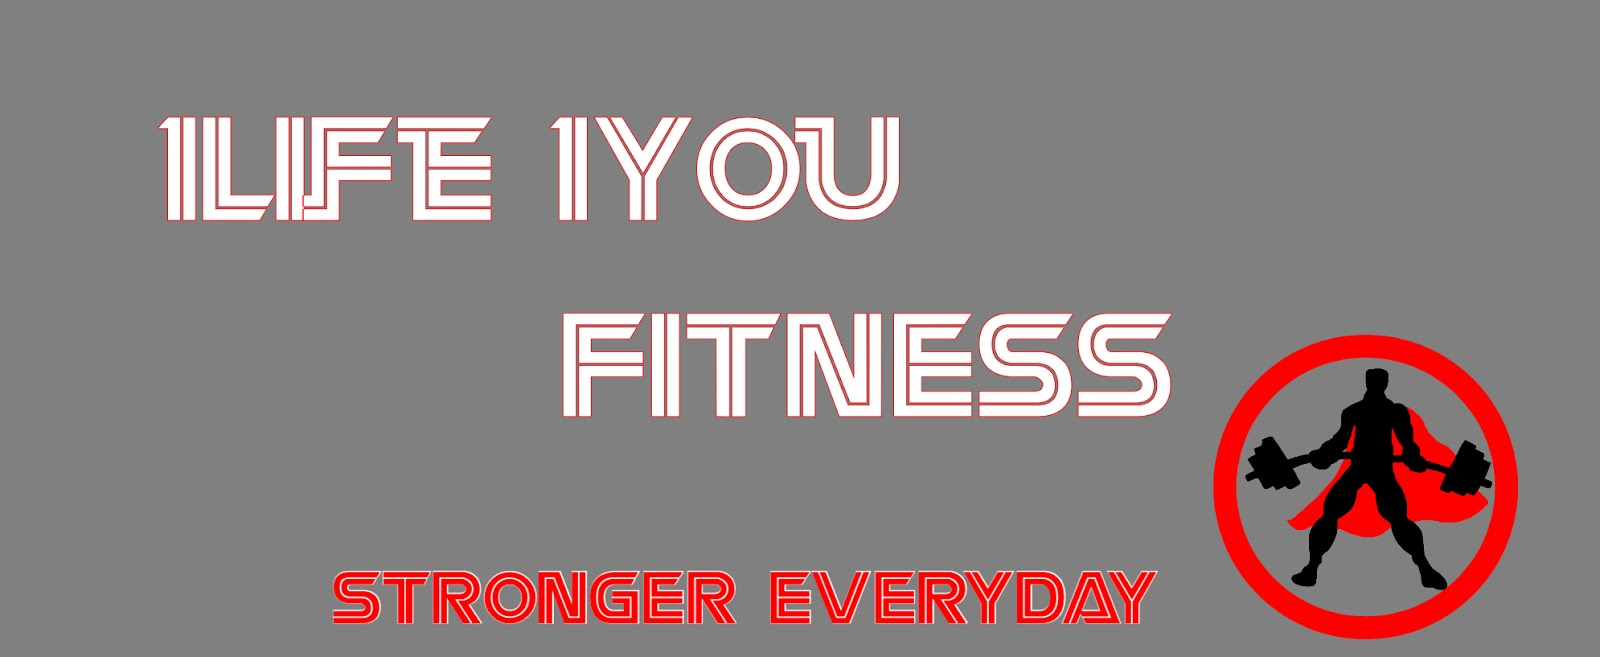 1 LIFE 1 YOU FITNESS